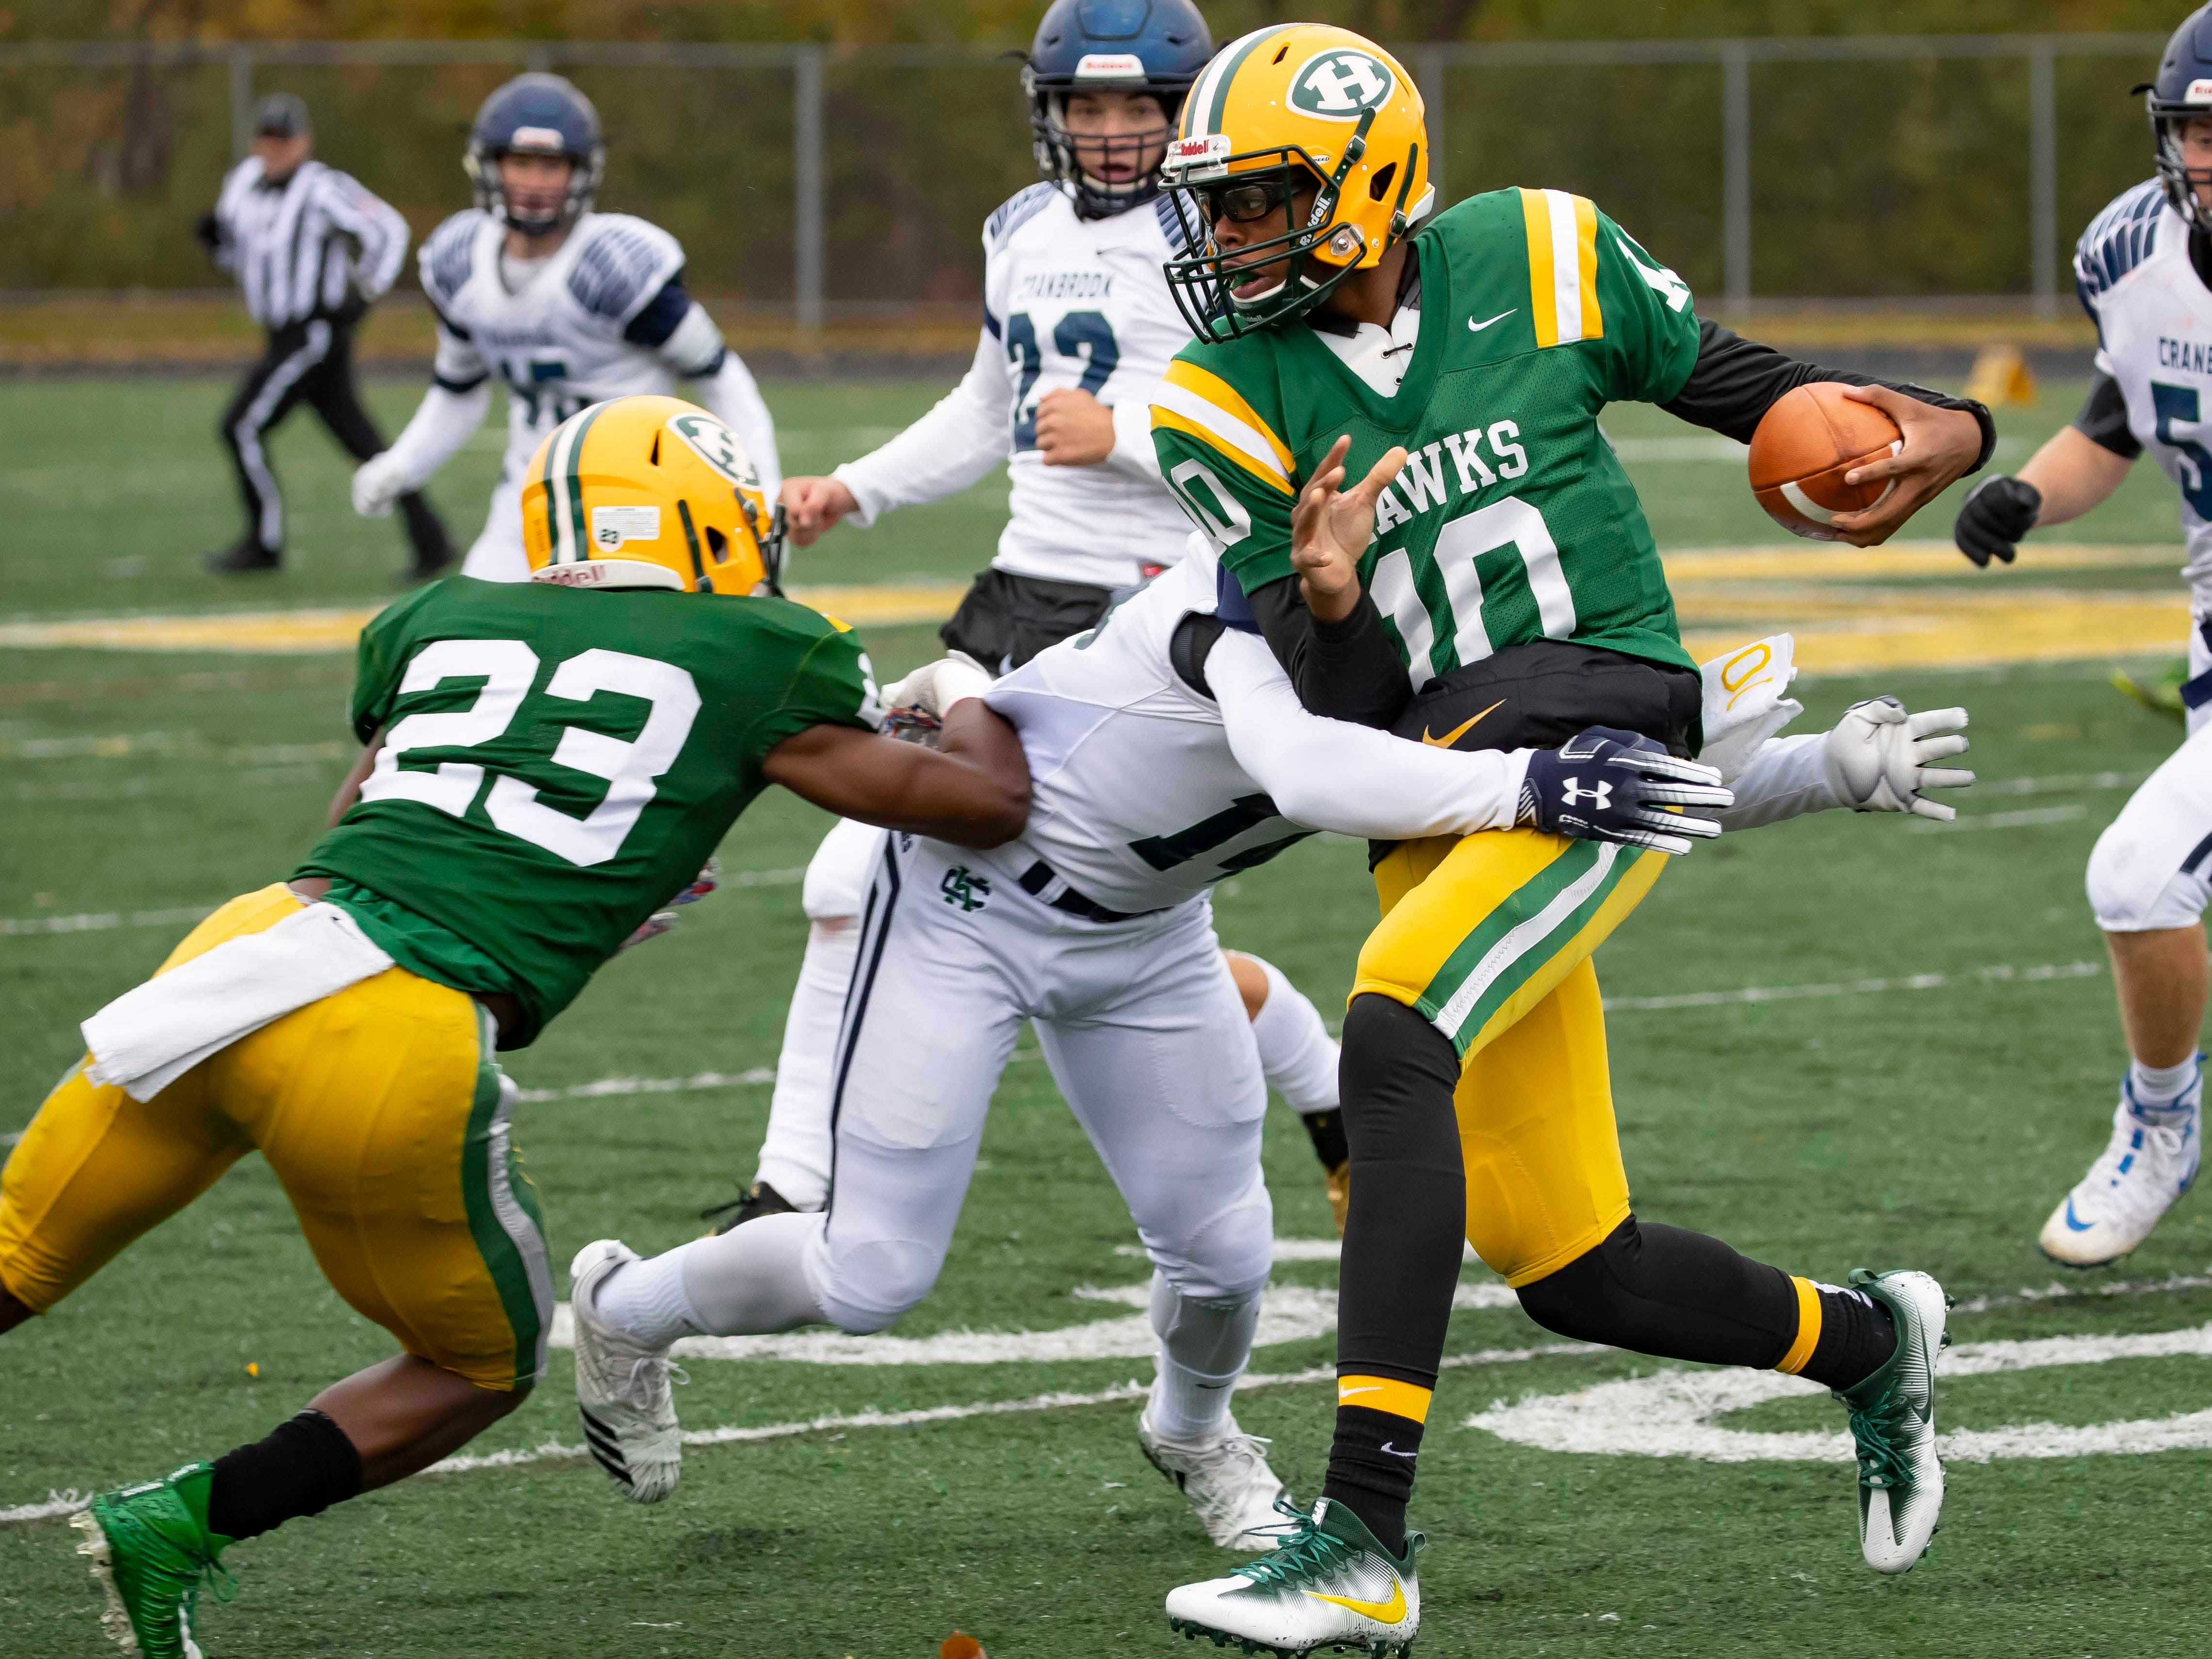 Keel Watson (10) of Farmington Hills Harrison Hawks is tackled by Torrell Williams (11) of Cranbrook Kingswood in the first half of a 24-10 playoff victory for Harrison at John Herrington Athletic Complex at Buller Field on October 27, 2018 in Farmington Hills, Michigan.